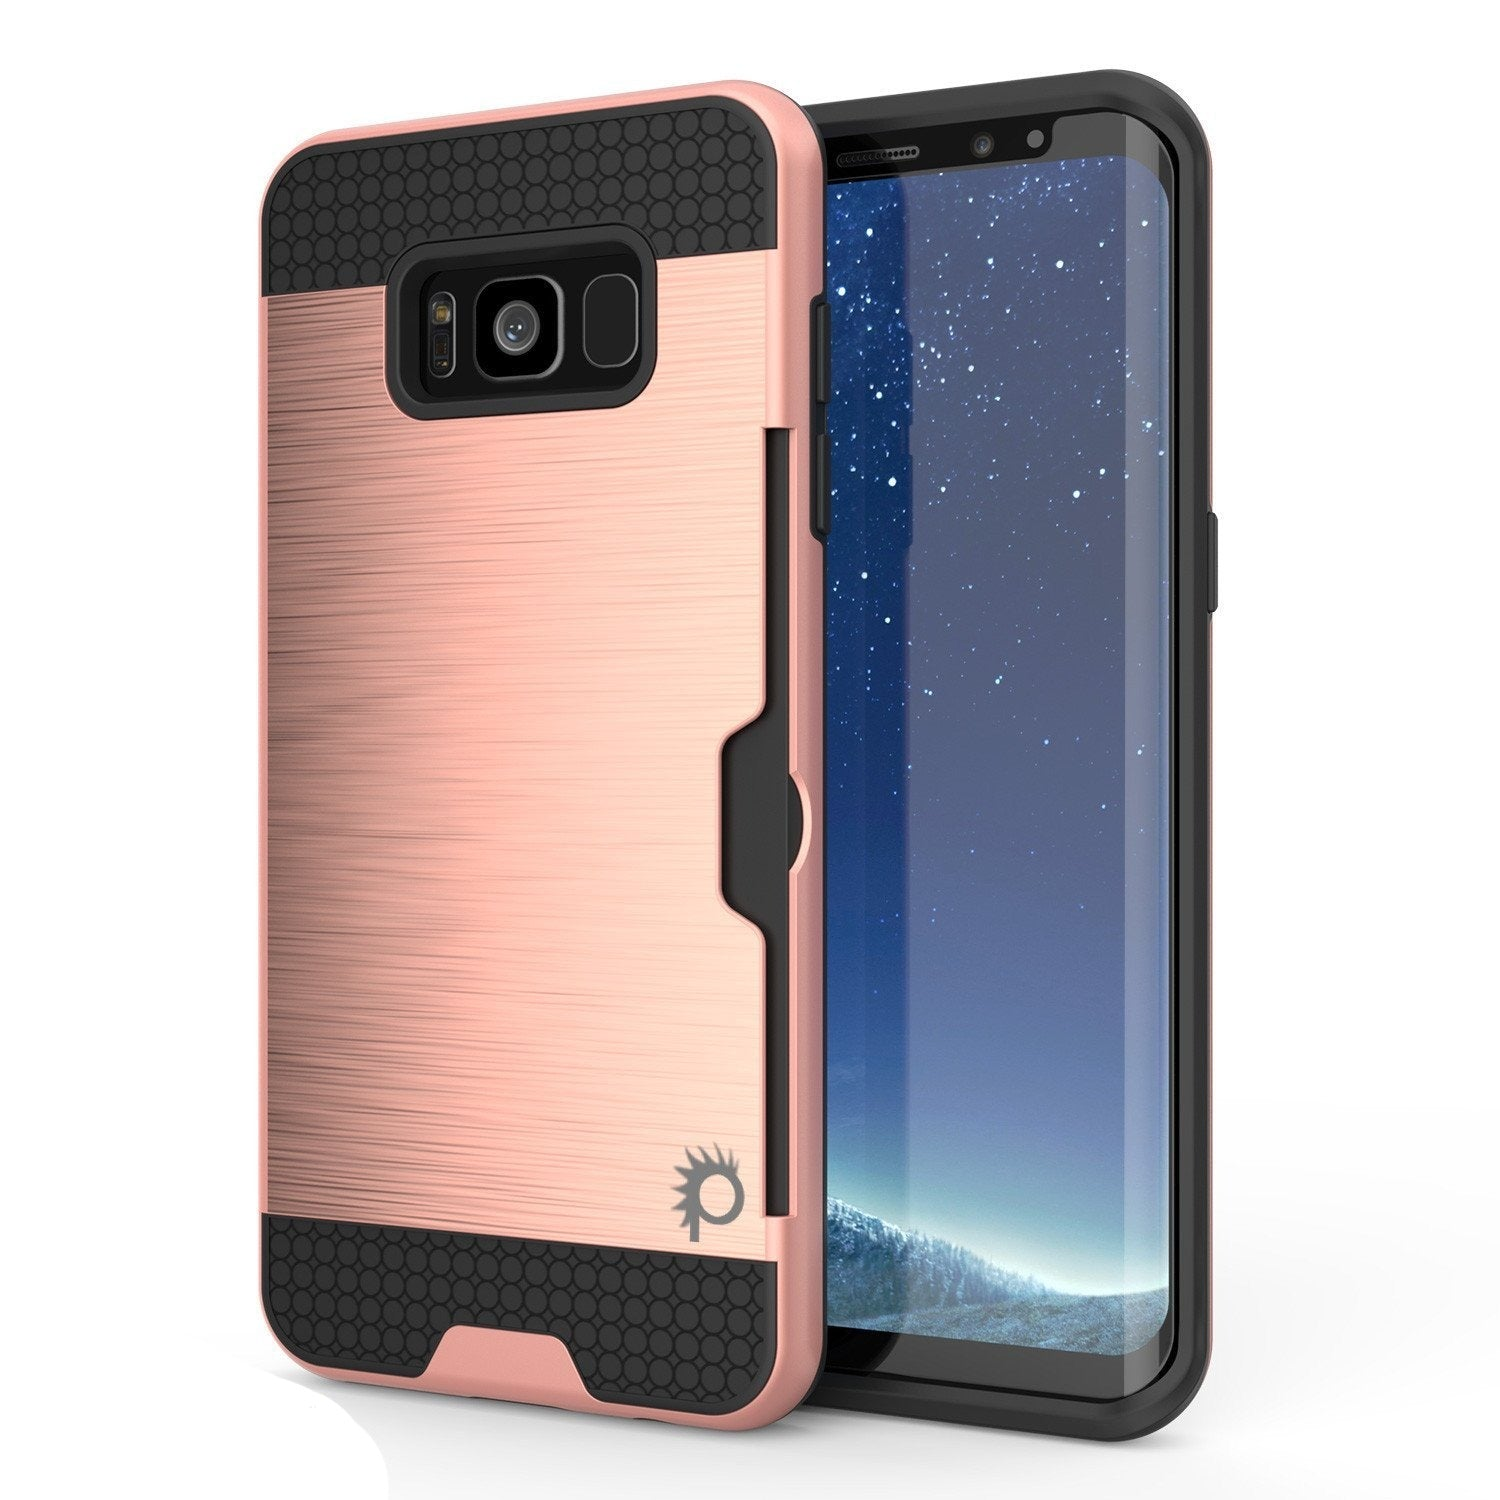 Galaxy S8 Case, PUNKcase [SLOT Series] [Slim Fit] Dual-Layer Armor Cover w/Integrated Anti-Shock System, Credit Card Slot & PUNKSHIELD Screen Protector for Samsung Galaxy S8[Rose Gold]